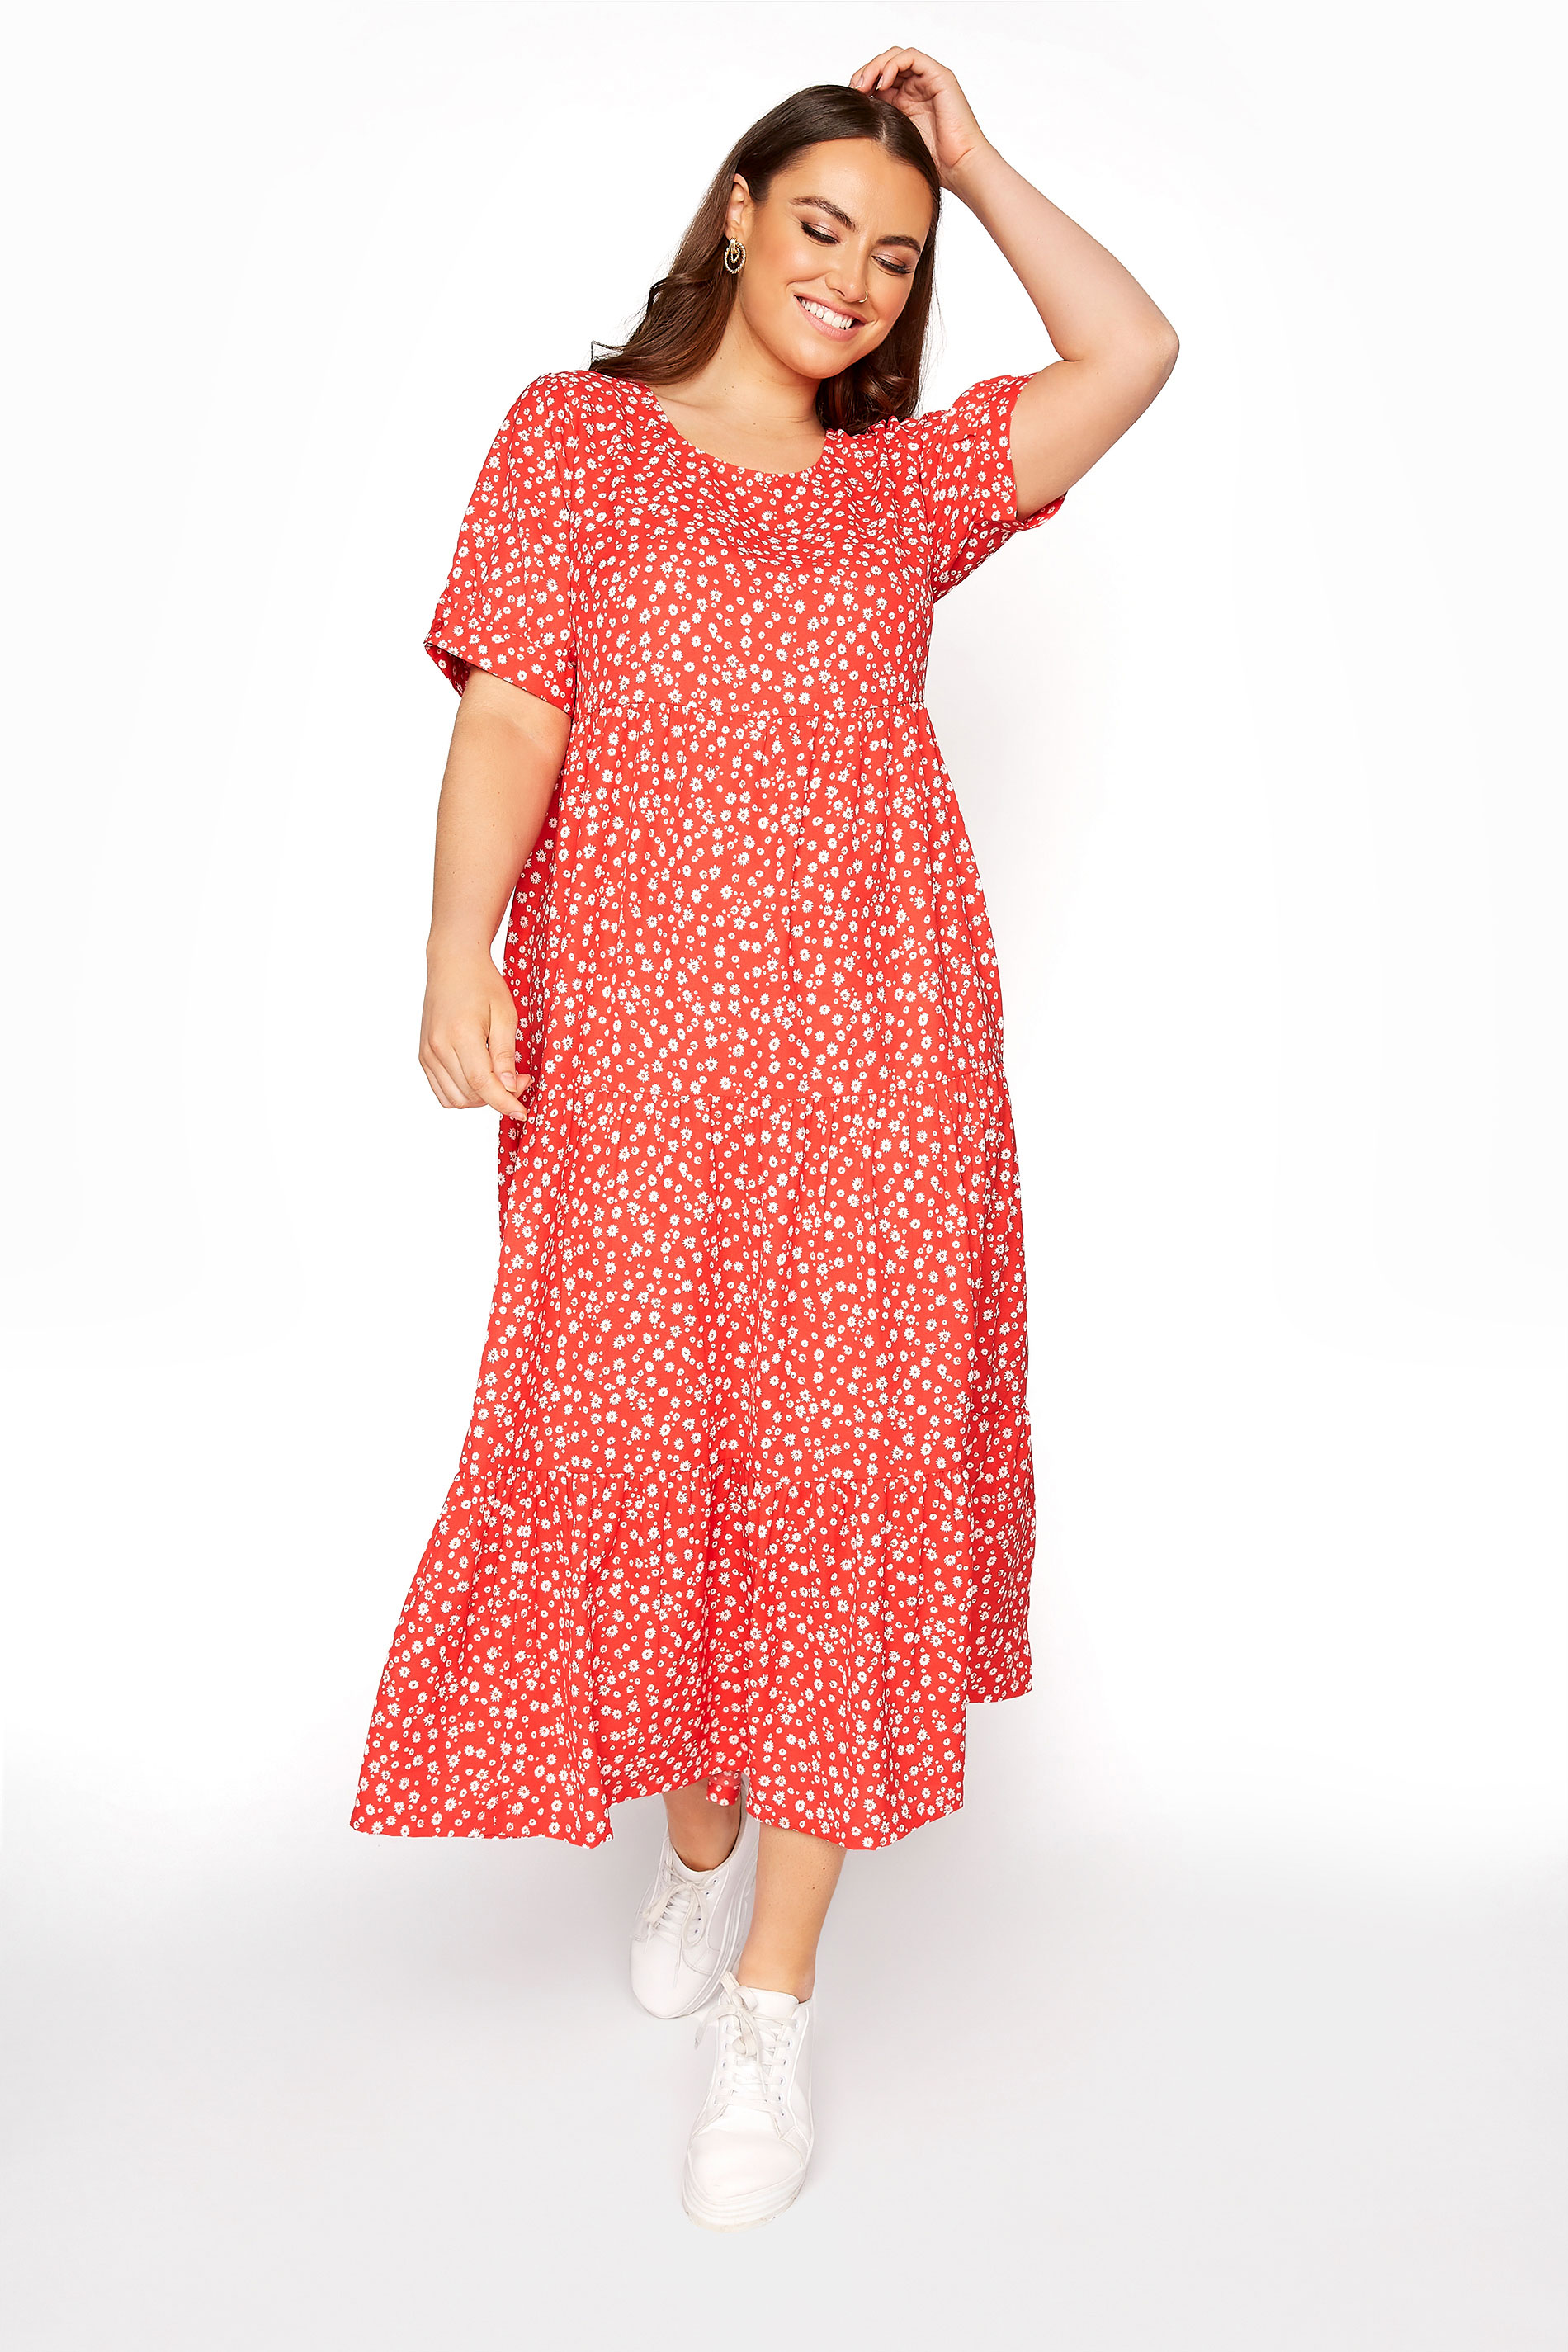 LIMITED COLLECTION Red Daisy Print Tiered Maxi Dress_E.jpg